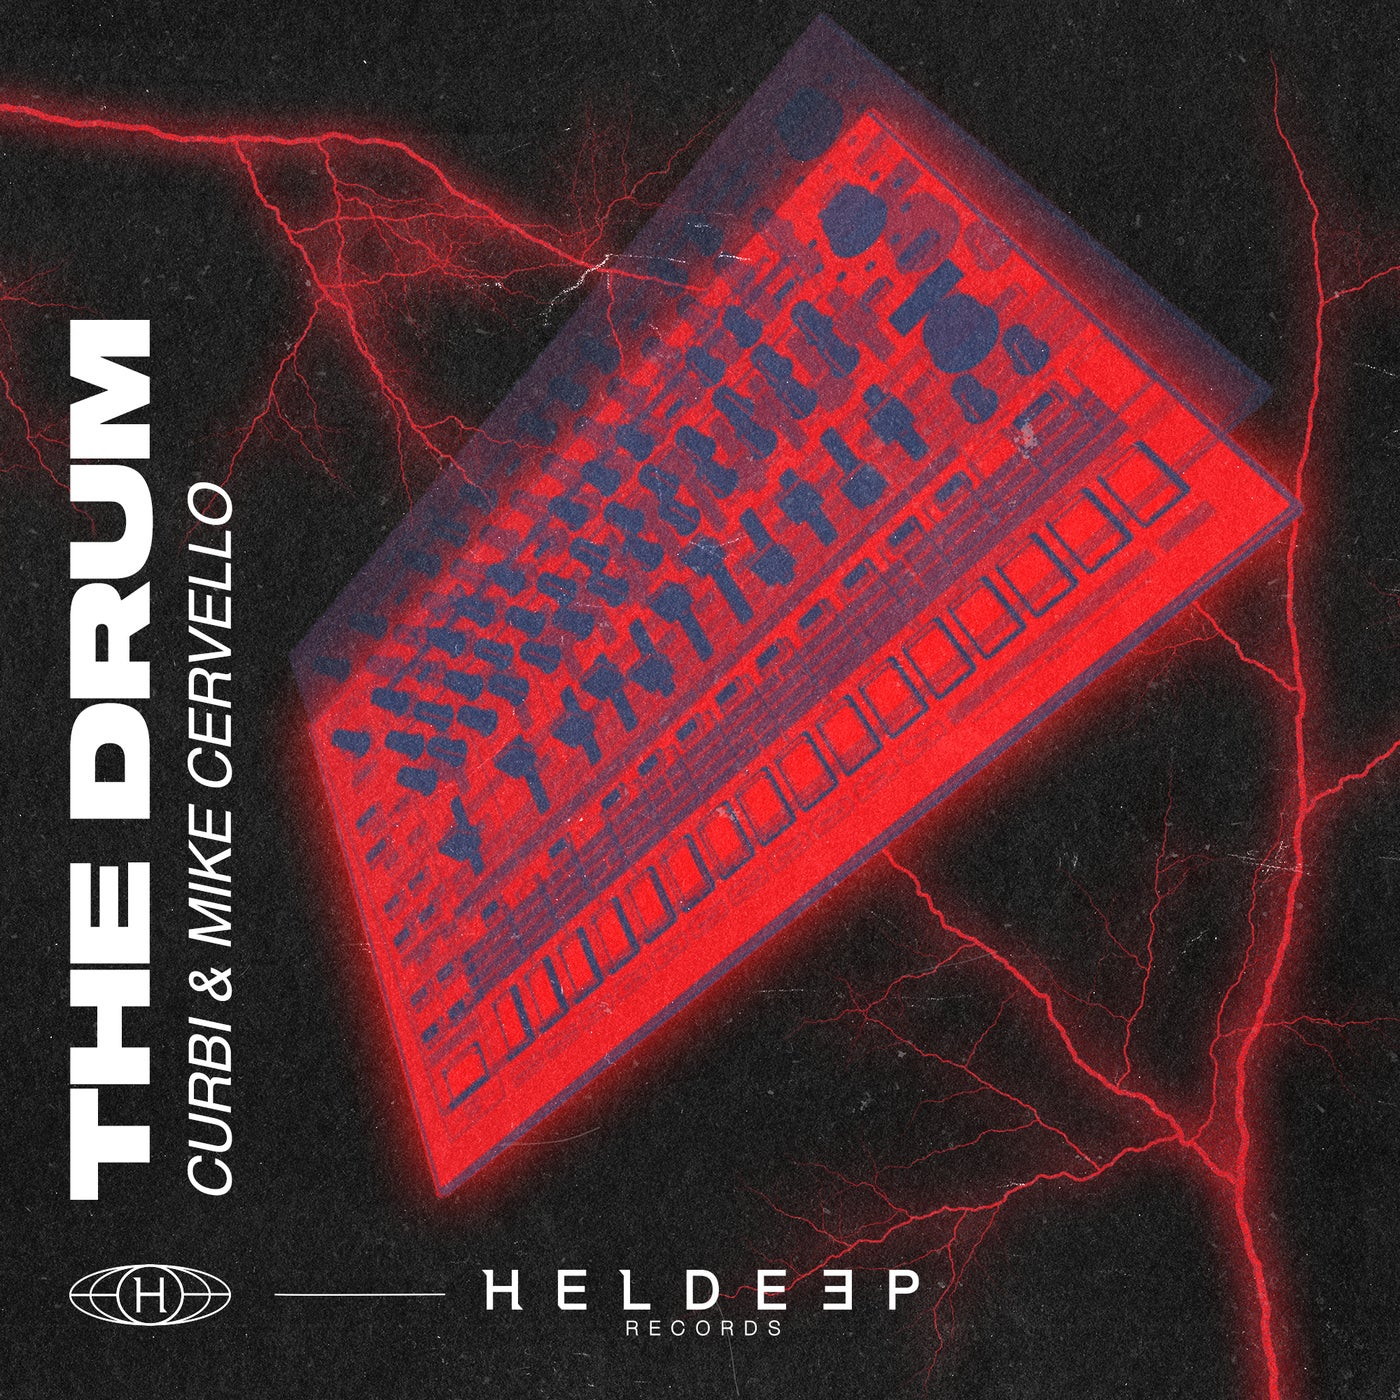 The Drum (Extended Mix)